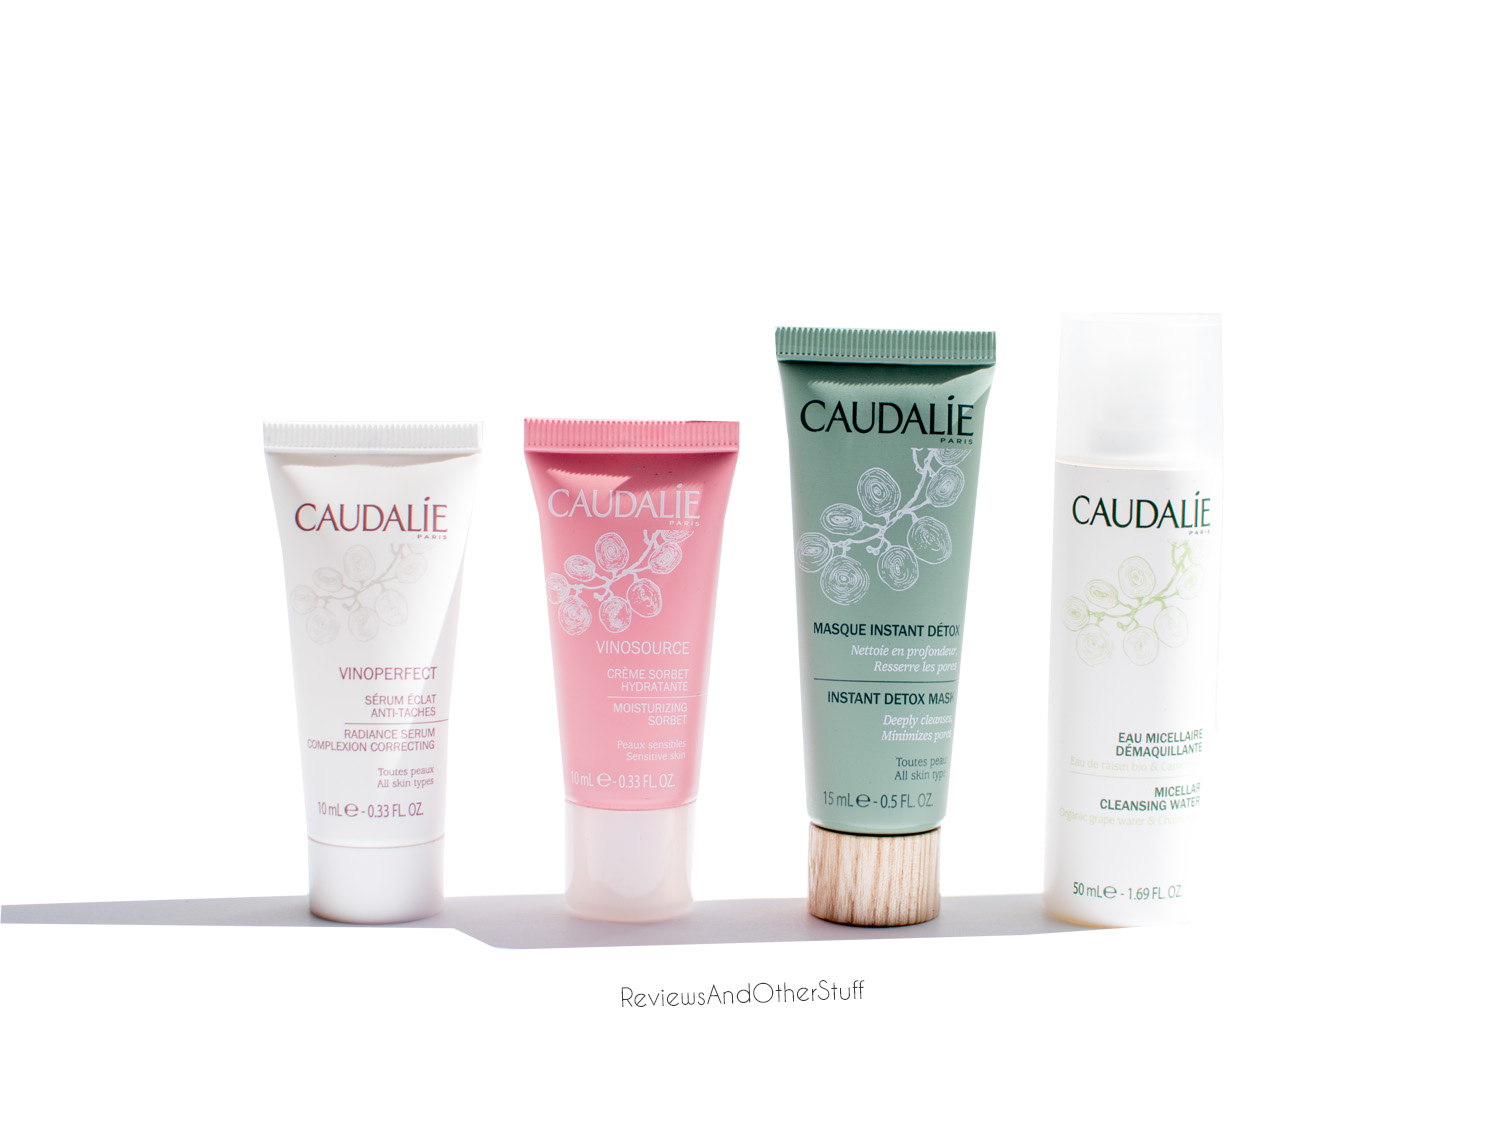 French Products Sephora Beauty Insider 500 Points Caudalie French